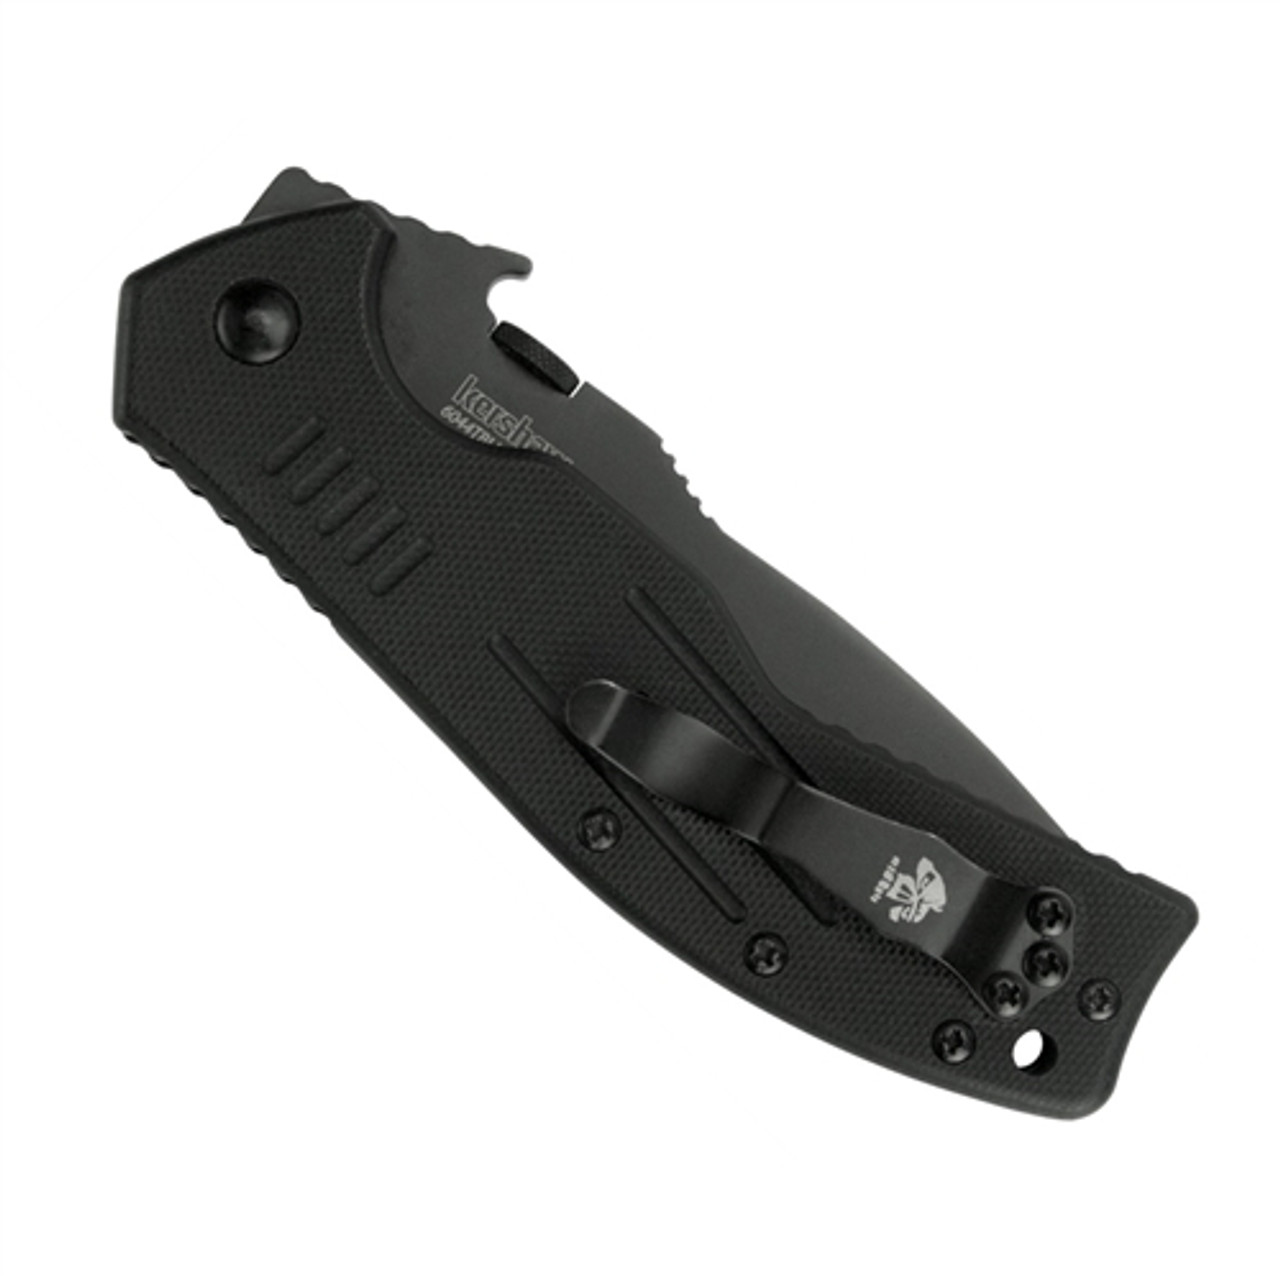 Kershaw Emerson CQC-8K Knife, Black Tanto Point Blade